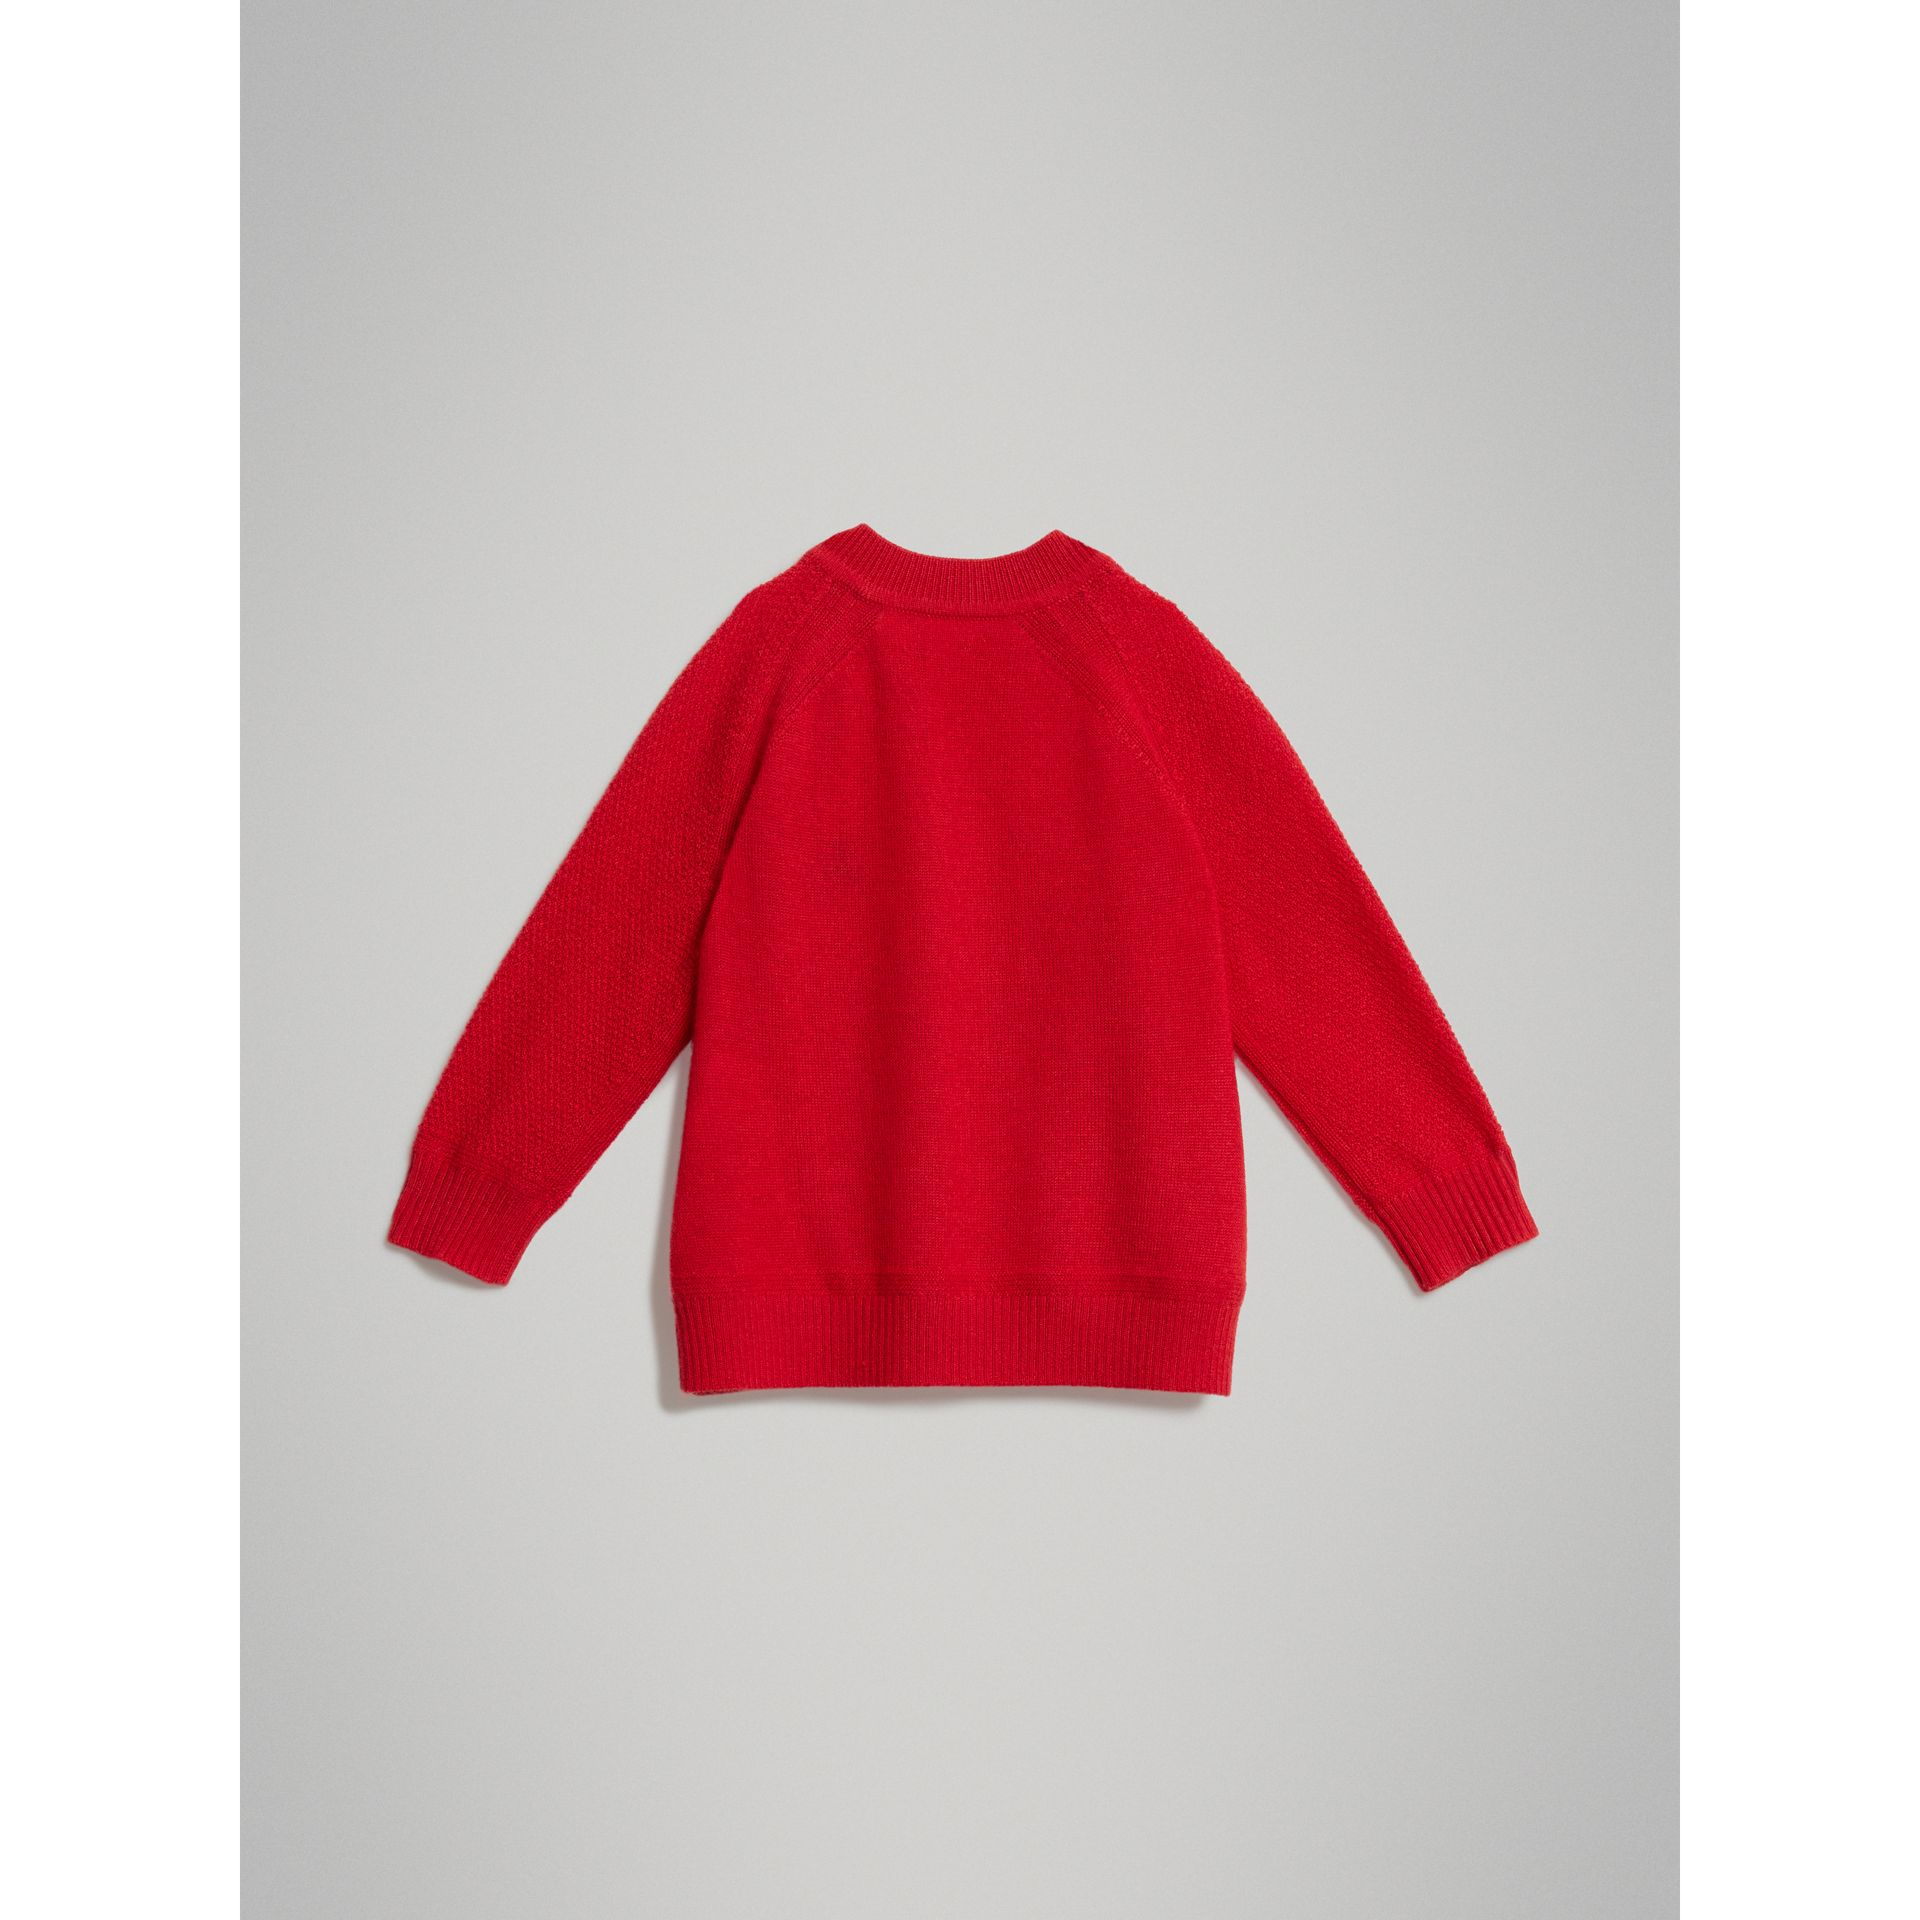 Contrast Motif Cashmere Sweater in Burgundy Red - Children | Burberry United Kingdom - gallery image 3